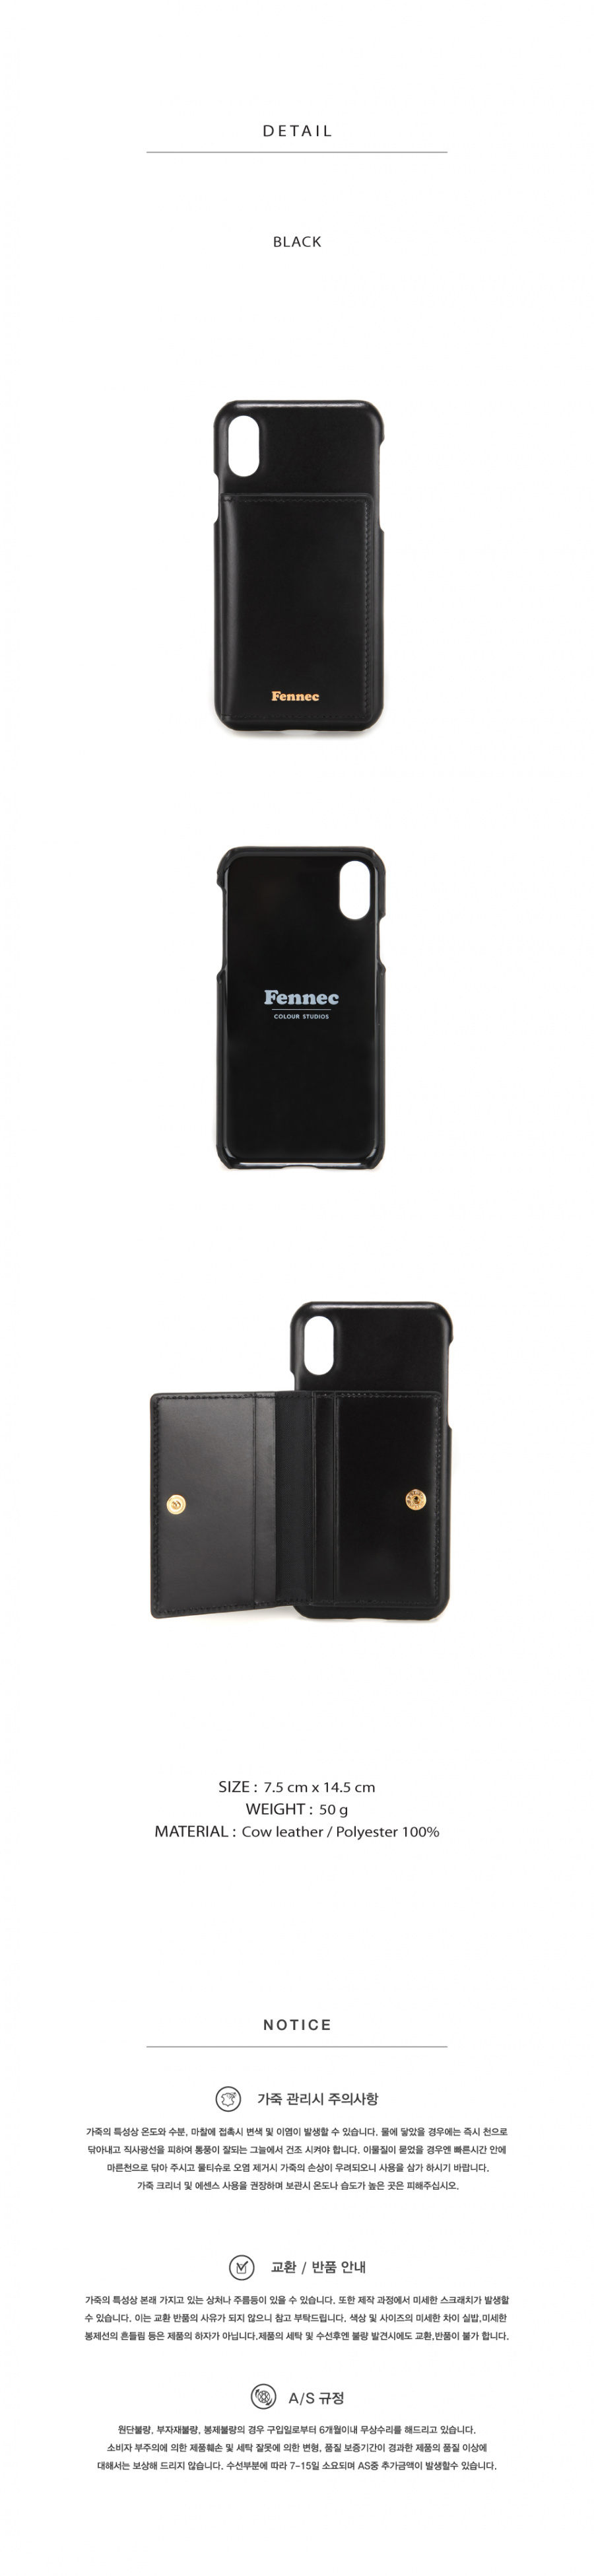 페넥(FENNEC) LEATHER iPHONE XS POCKET CASE - BLACK